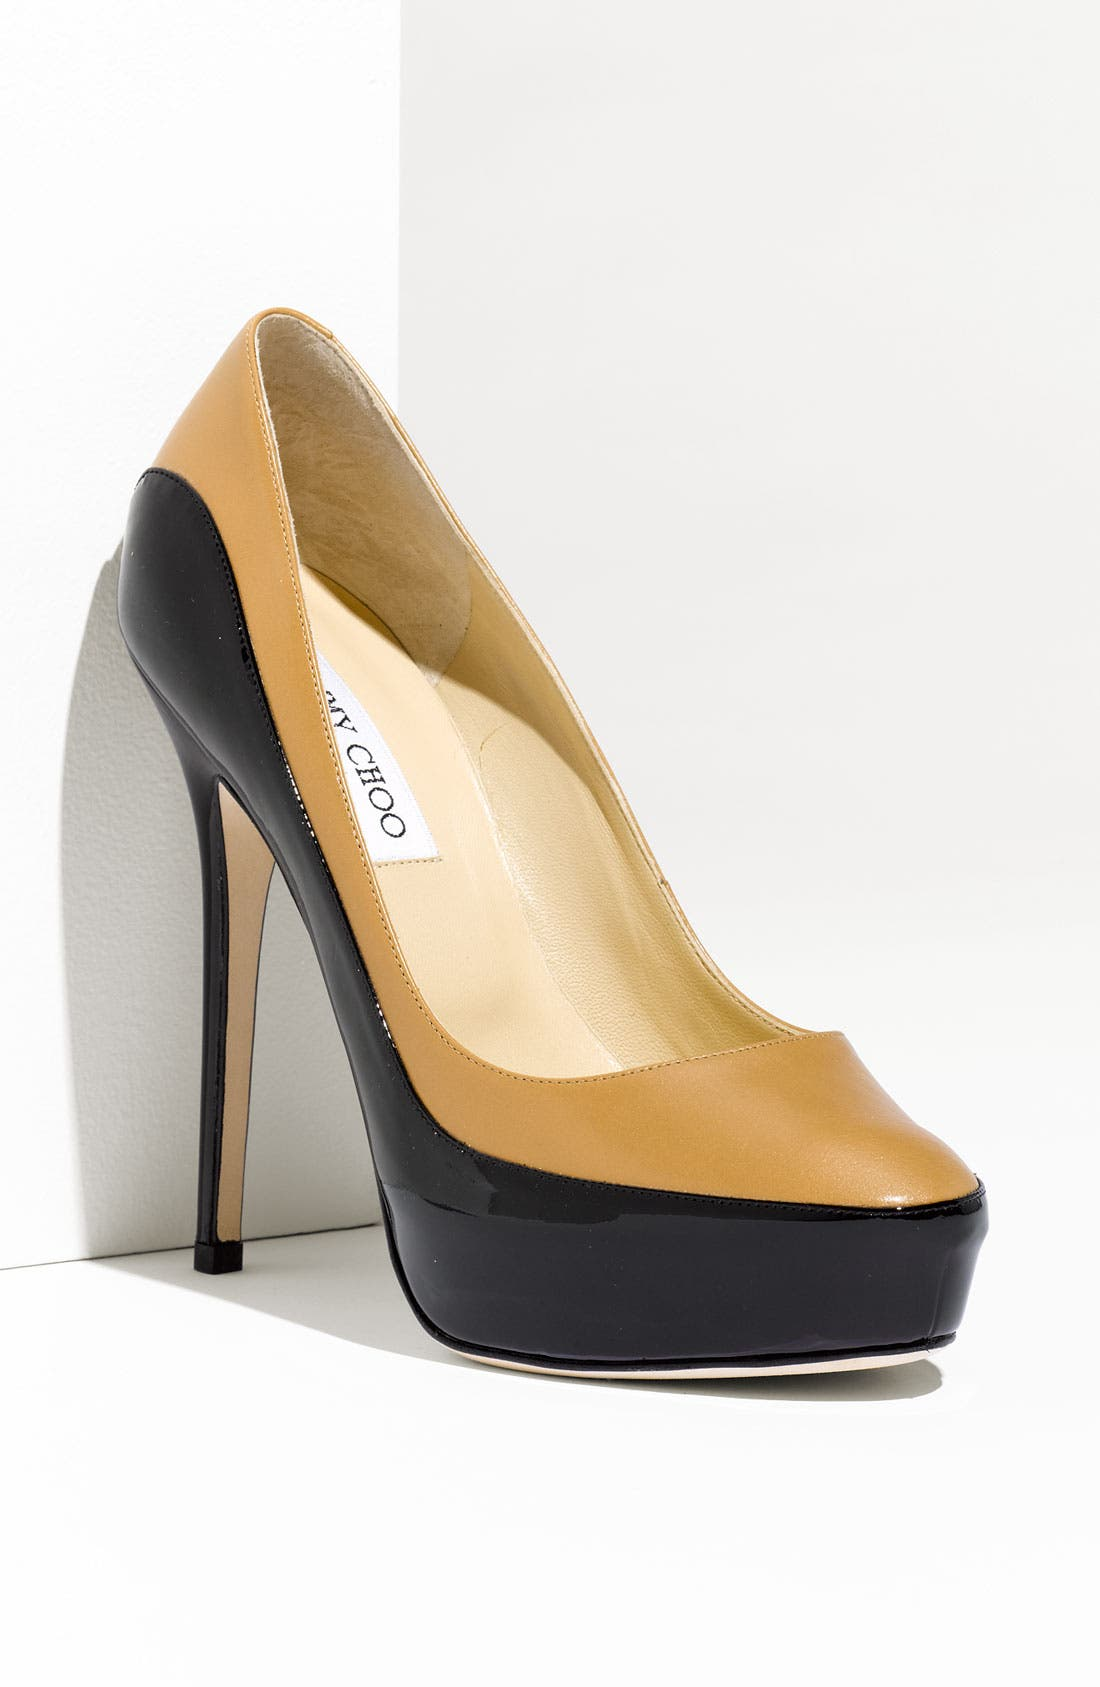 Main Image - Jimmy Choo 'Sepia' Two Tone Platform Pump